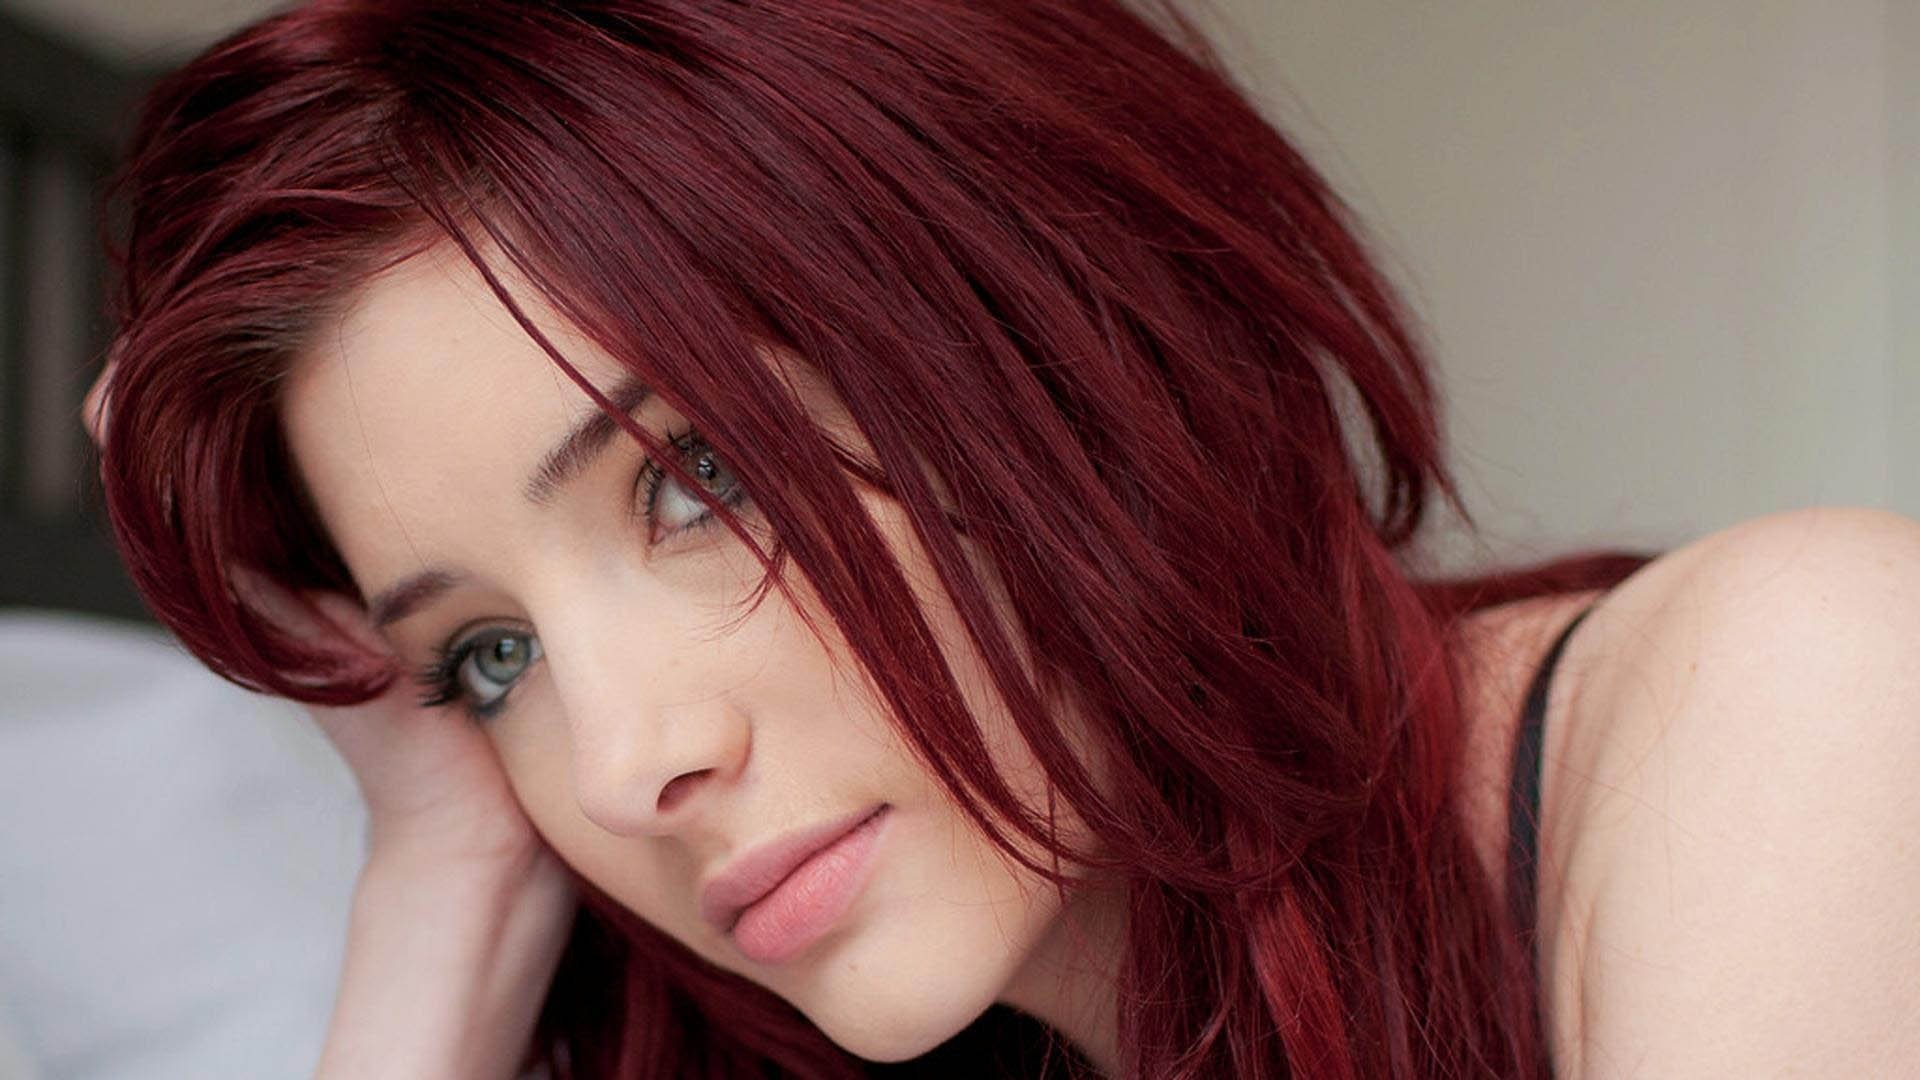 10 Amazing Dark Red Hair Color Ideas 30 dark red hair color ideas sultry showstopping styles 2021